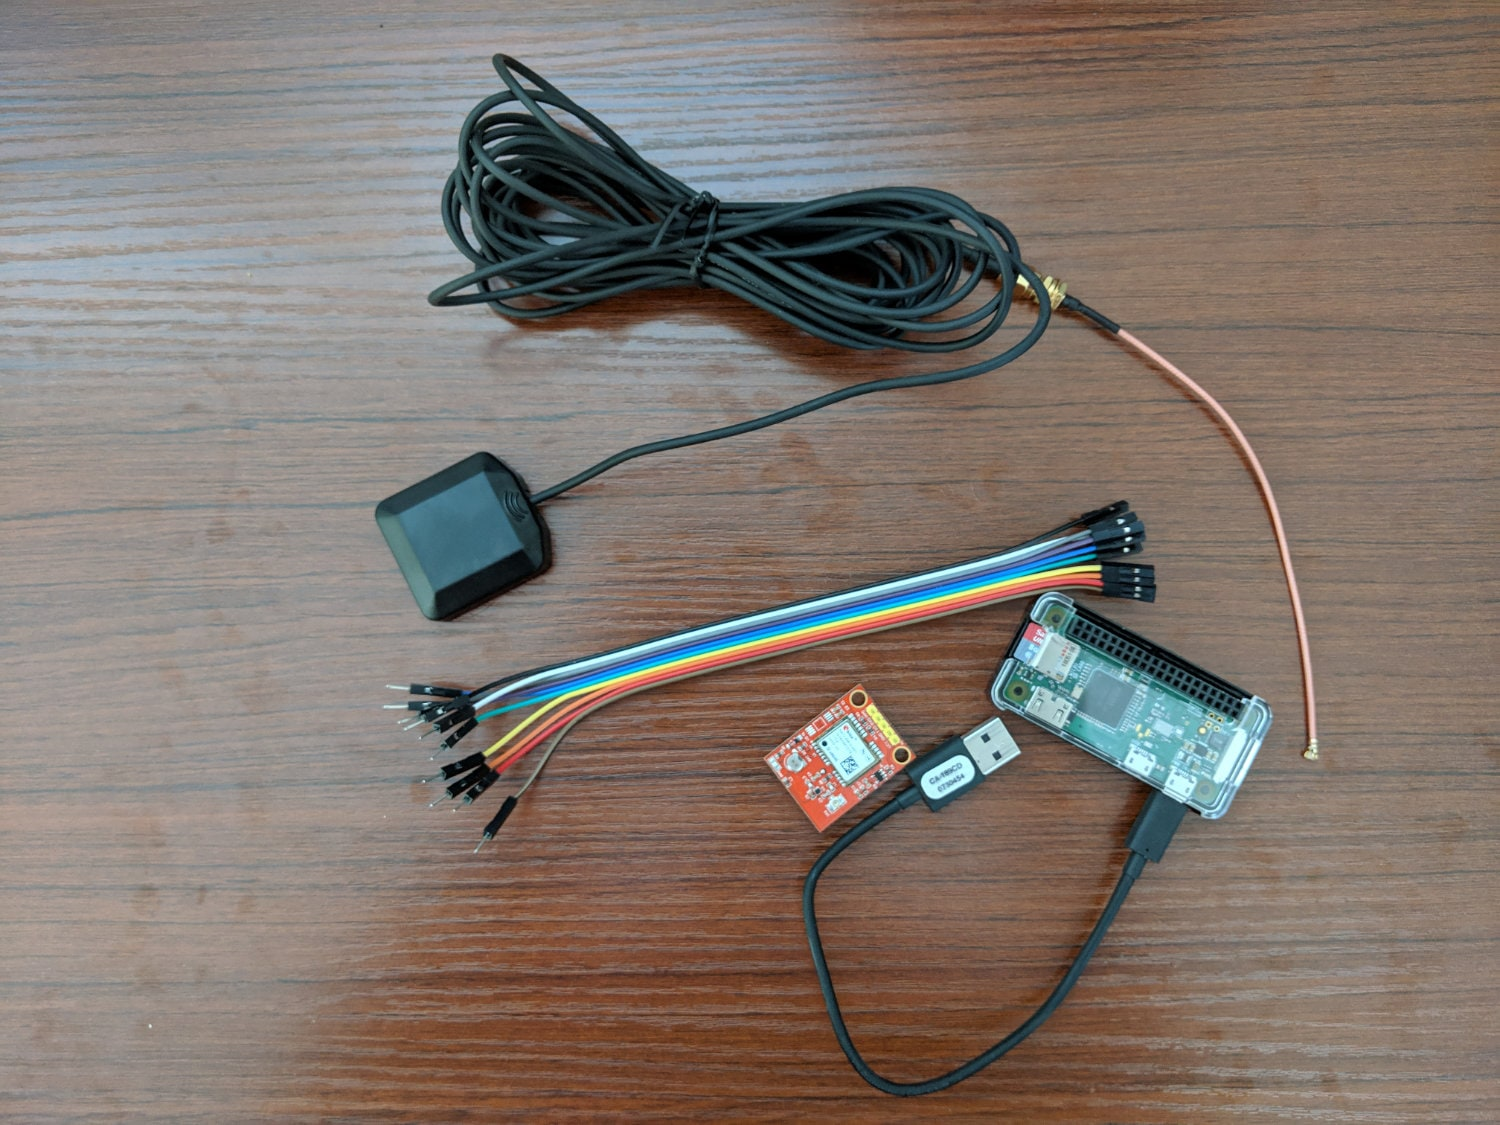 raspberry-pi-gps-hardware